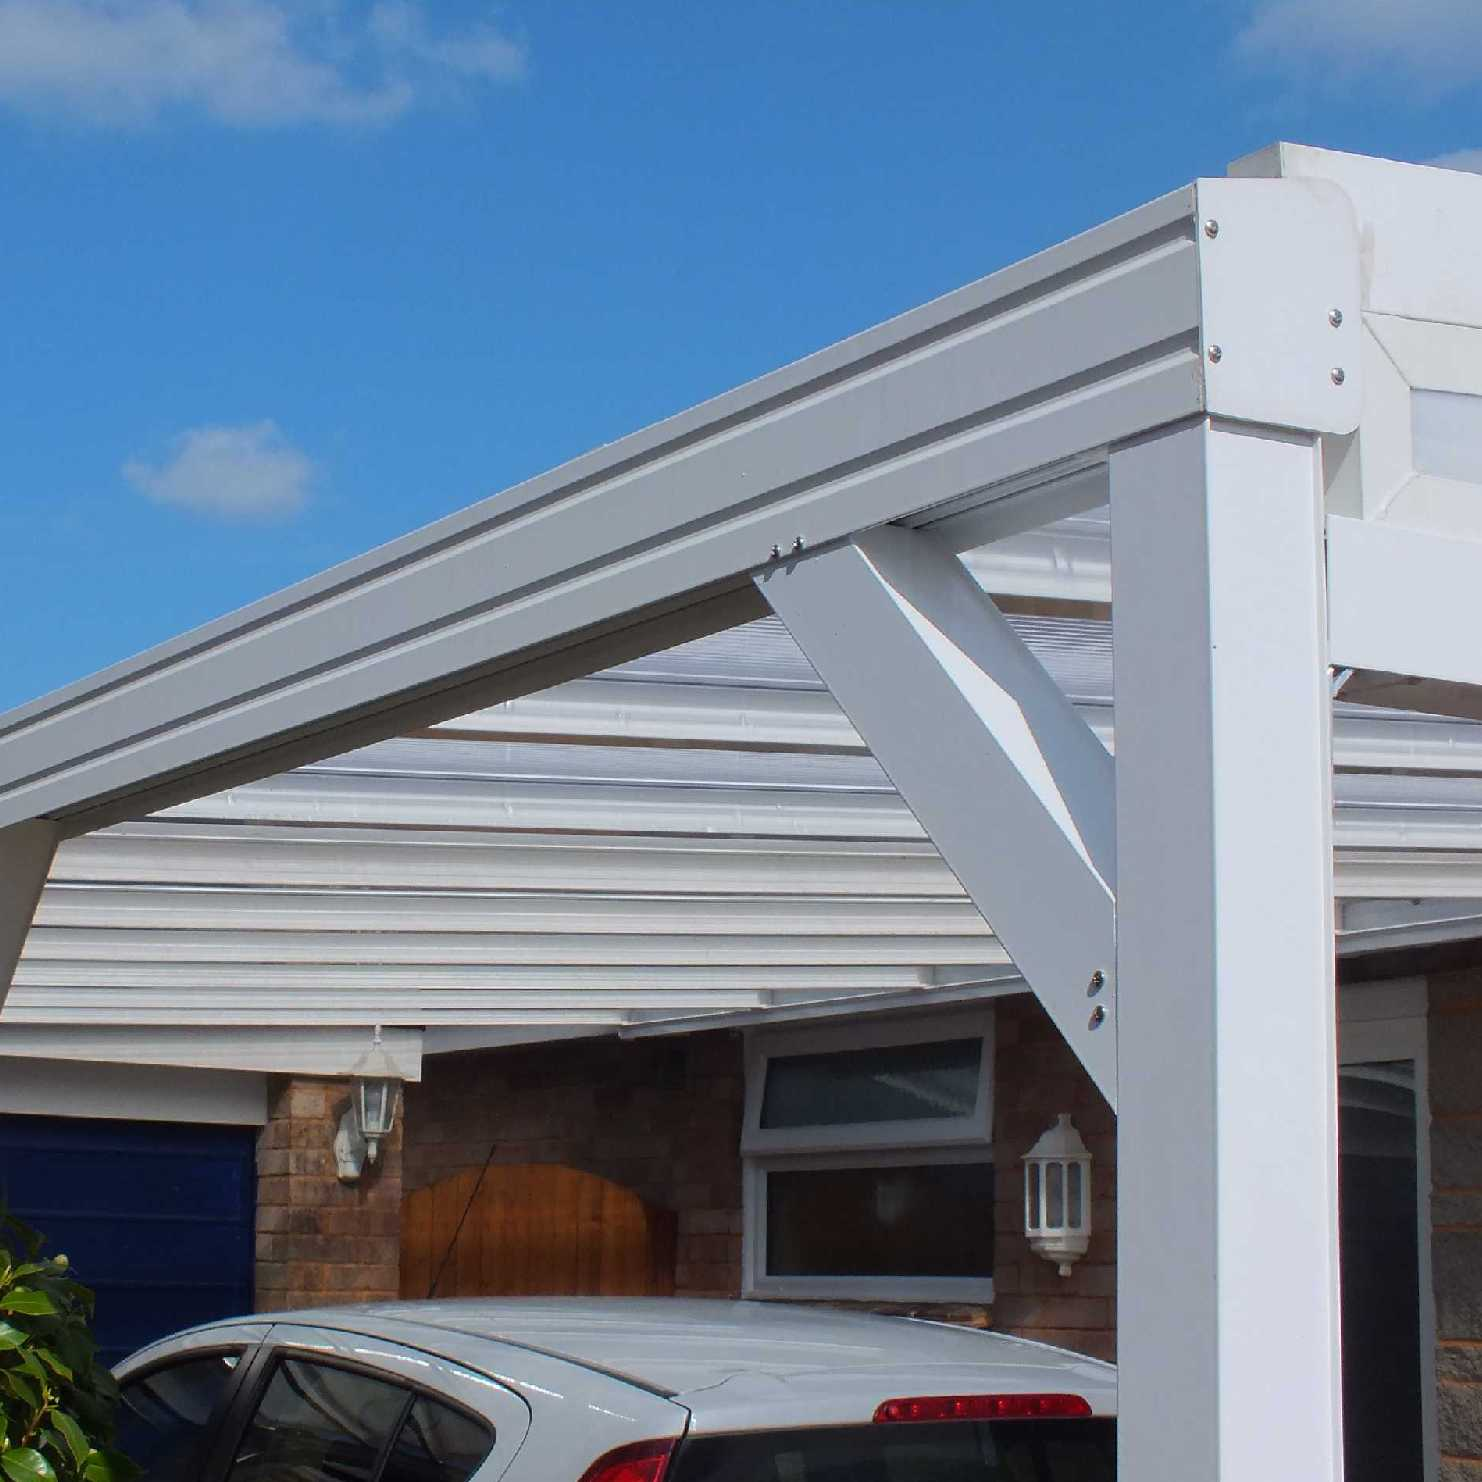 Great deals on Omega Smart White Lean-To Canopy with 16mm Polycarbonate Glazing - 11.4m (W) x 3.5m (P), (5) Supporting Posts